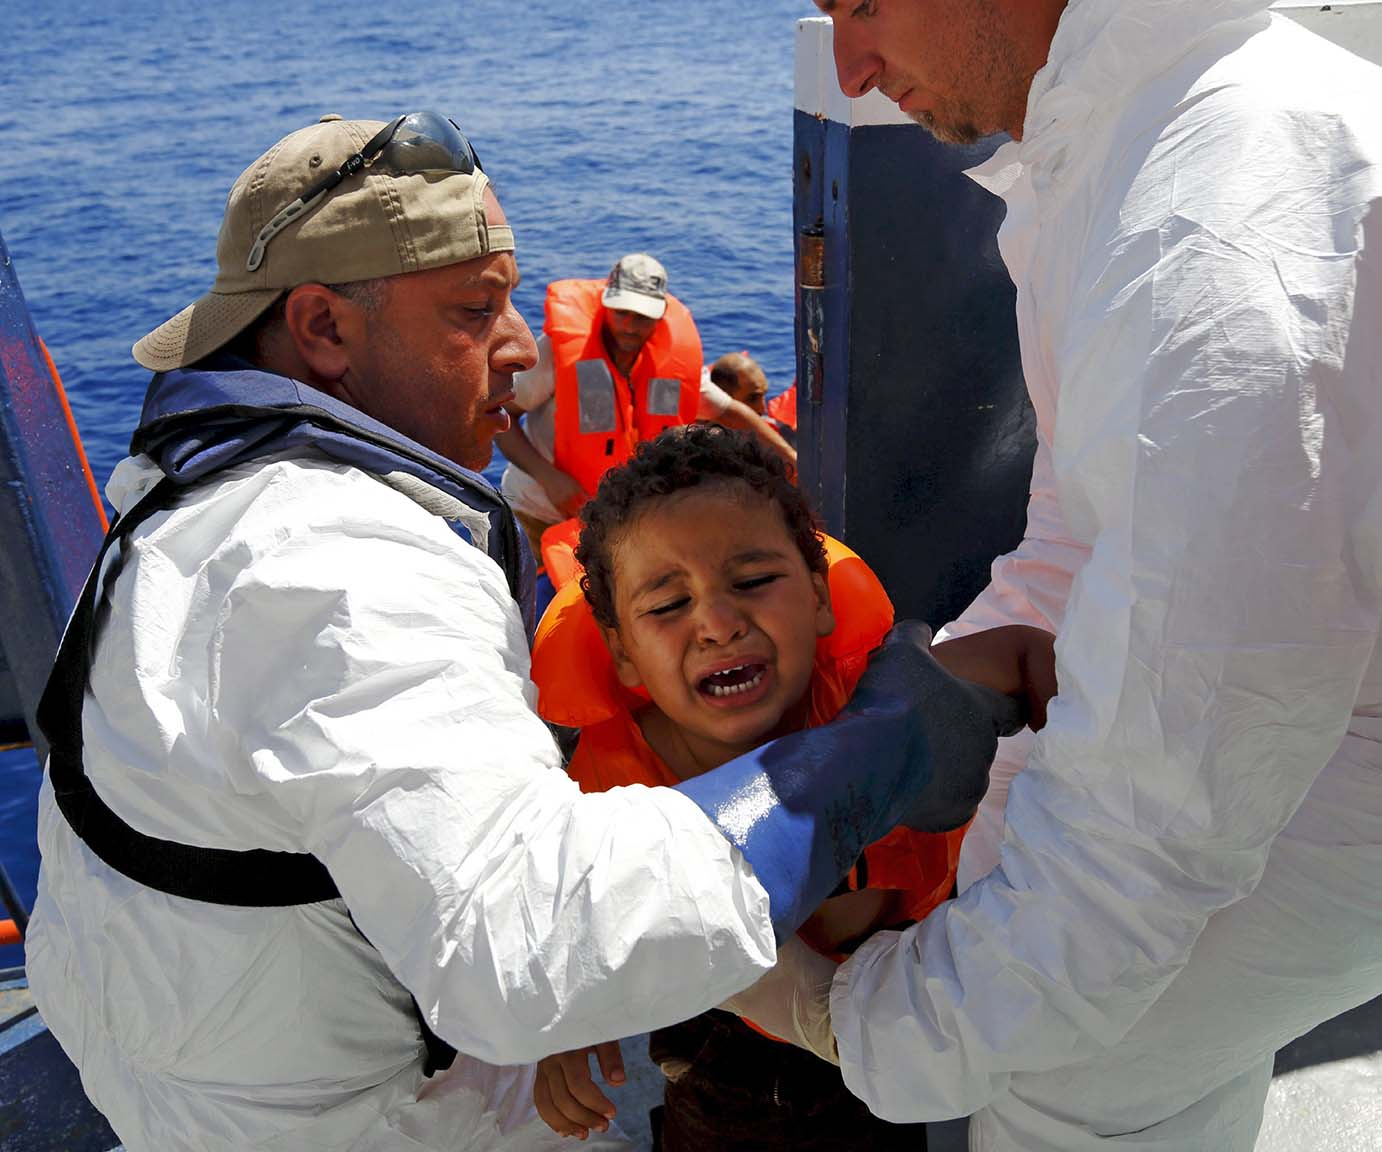 A migrant child is brought onto the Migrant Offshore Aid Station (MOAS) ship